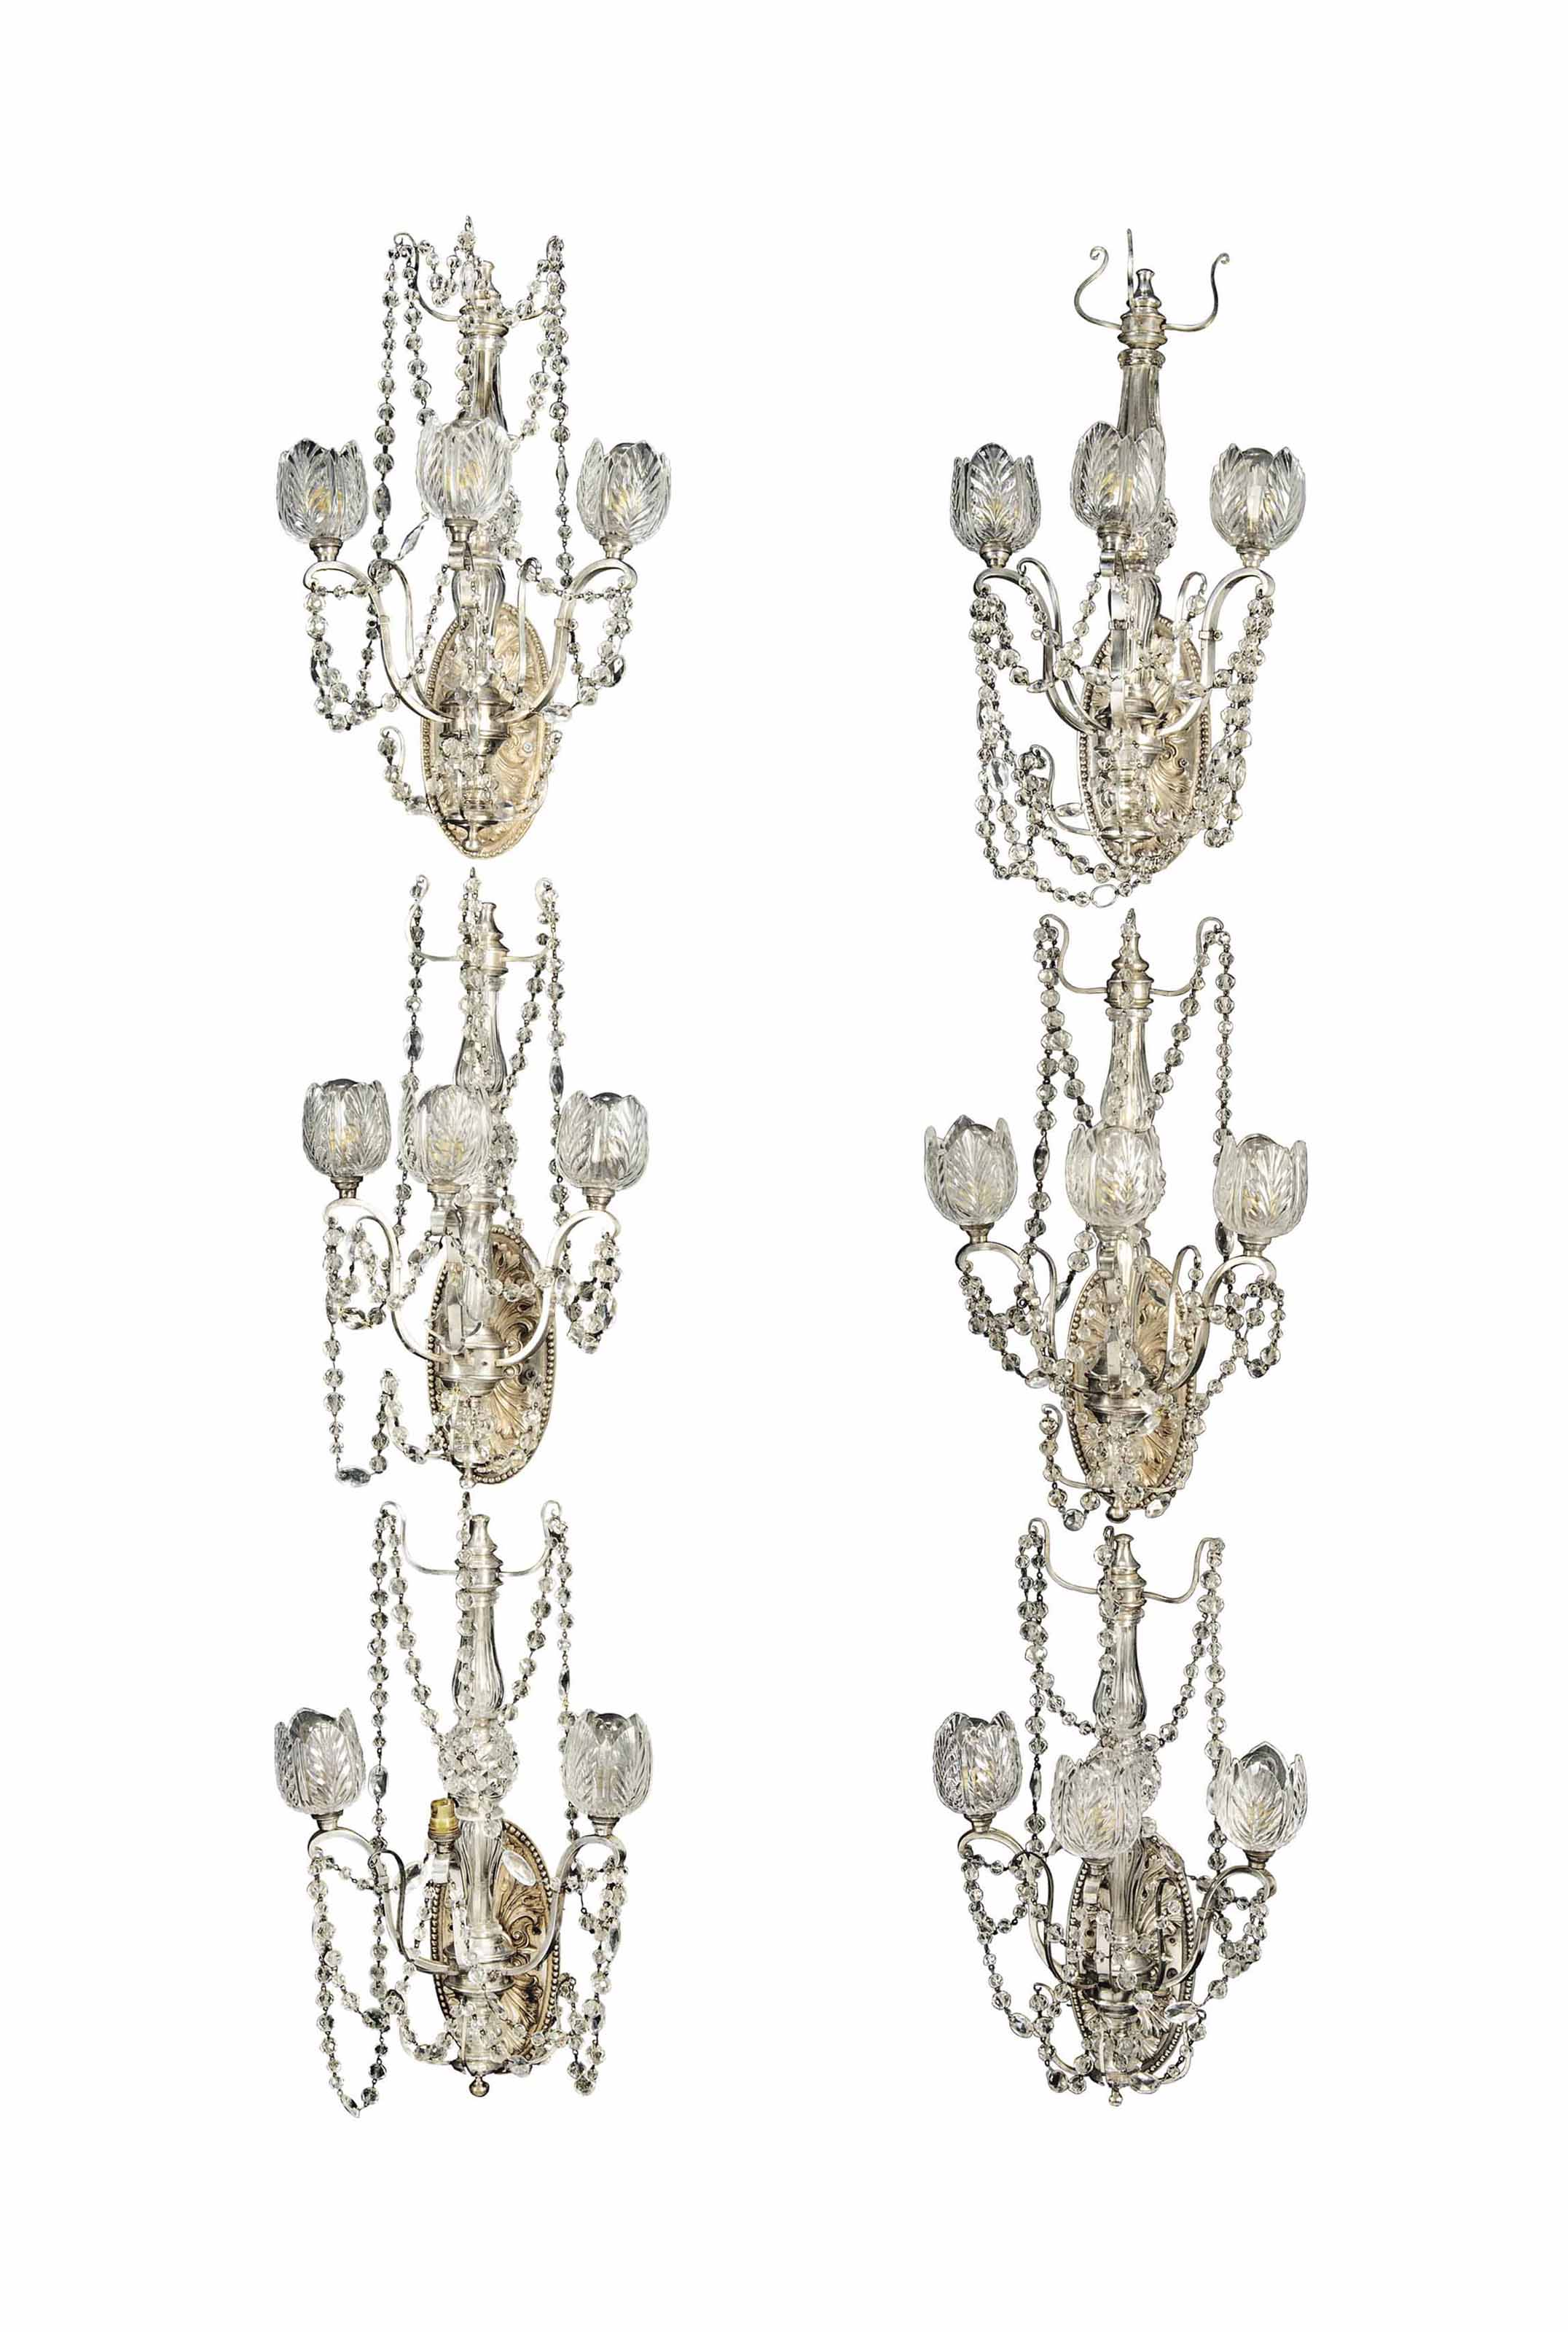 A SET OF SIX EDWARDIAN SILVERED-BRONZE AND GLASS THREE-LIGHT WALL-APPLIQUES